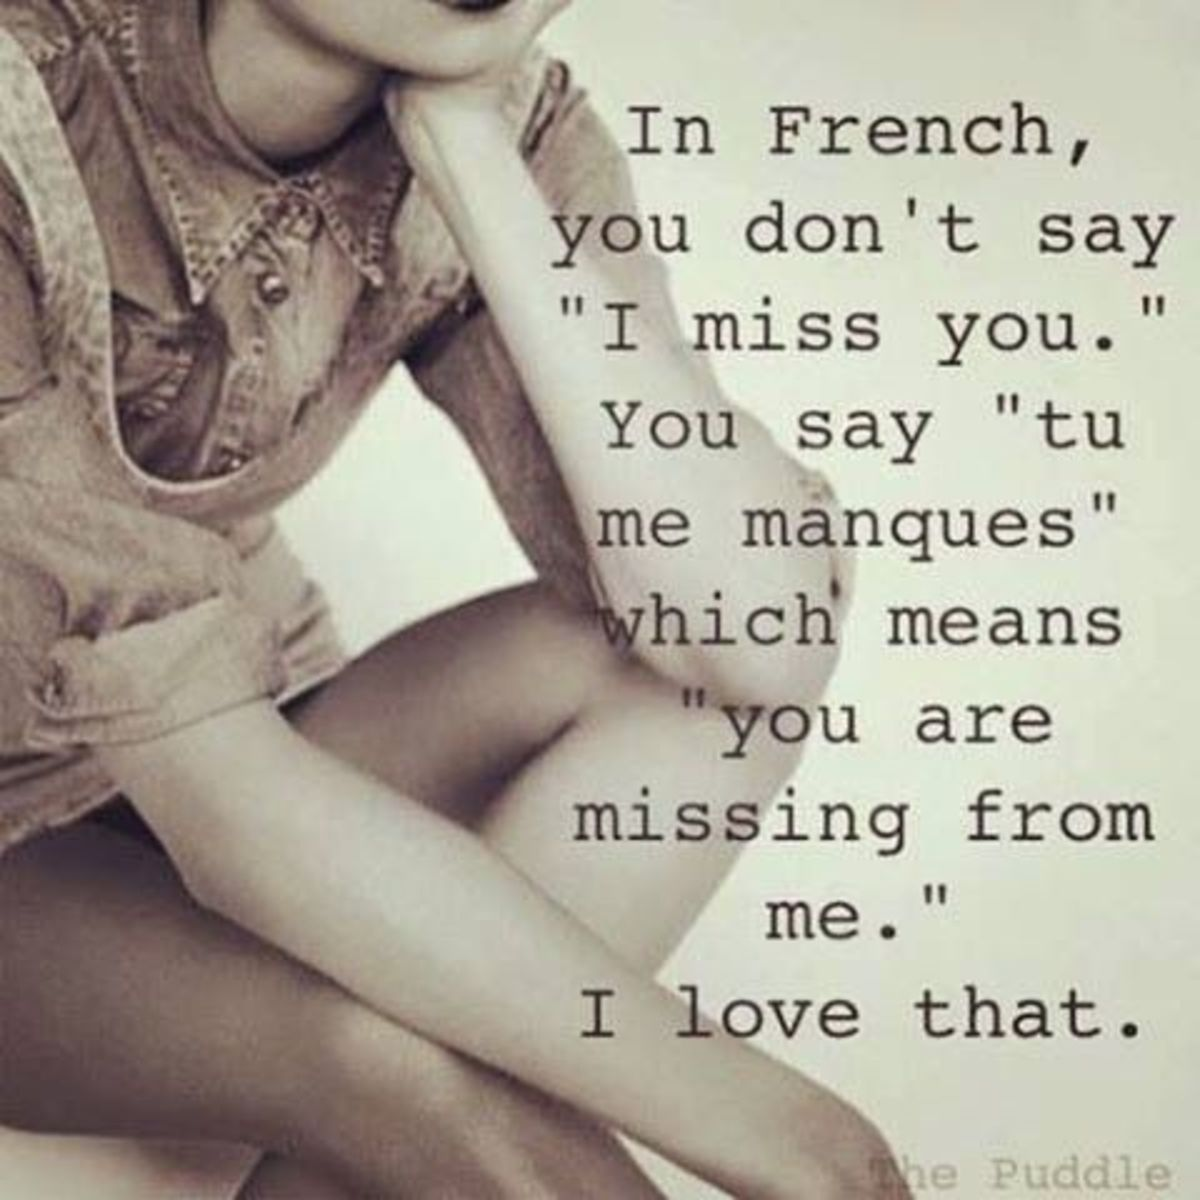 I Miss You in French is just too adorable